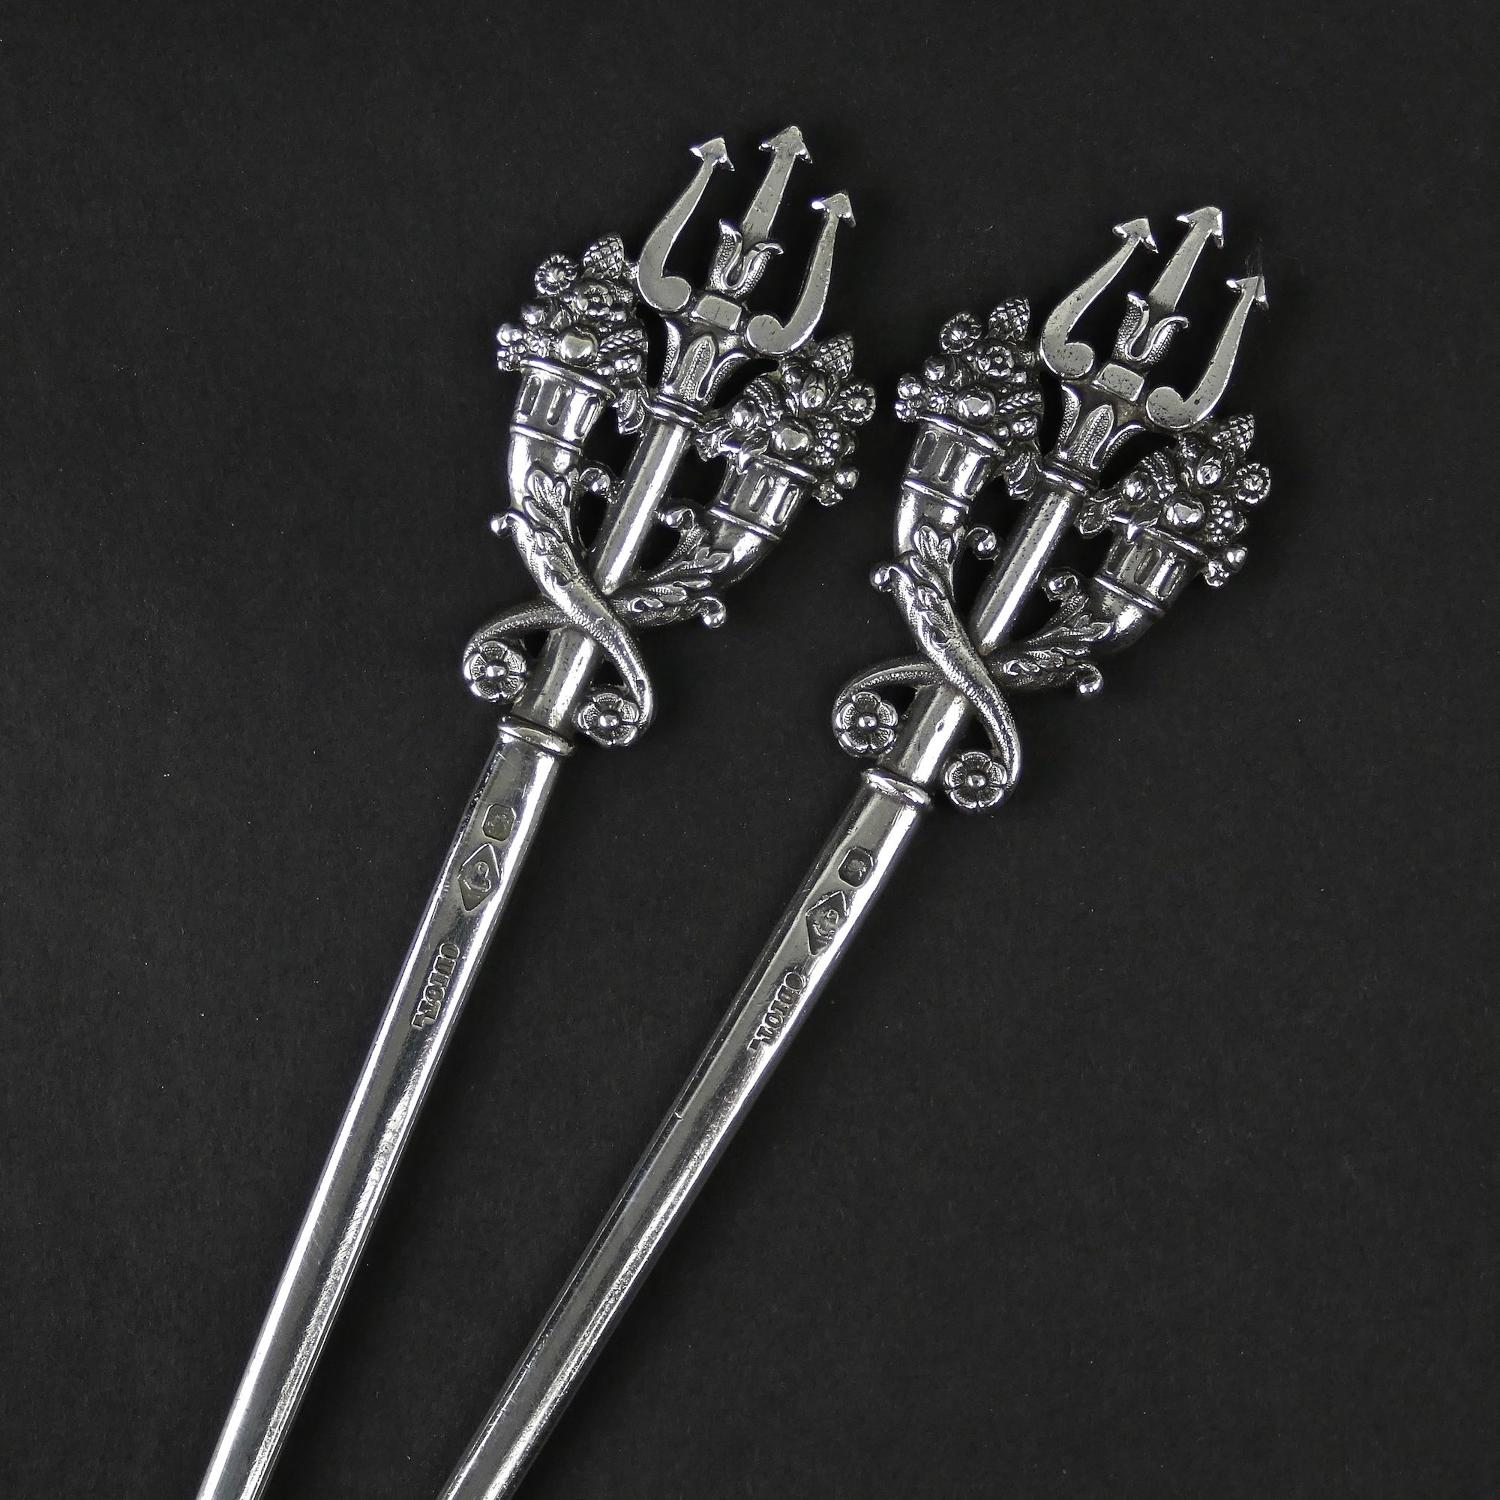 Silver skewers by Odiot.